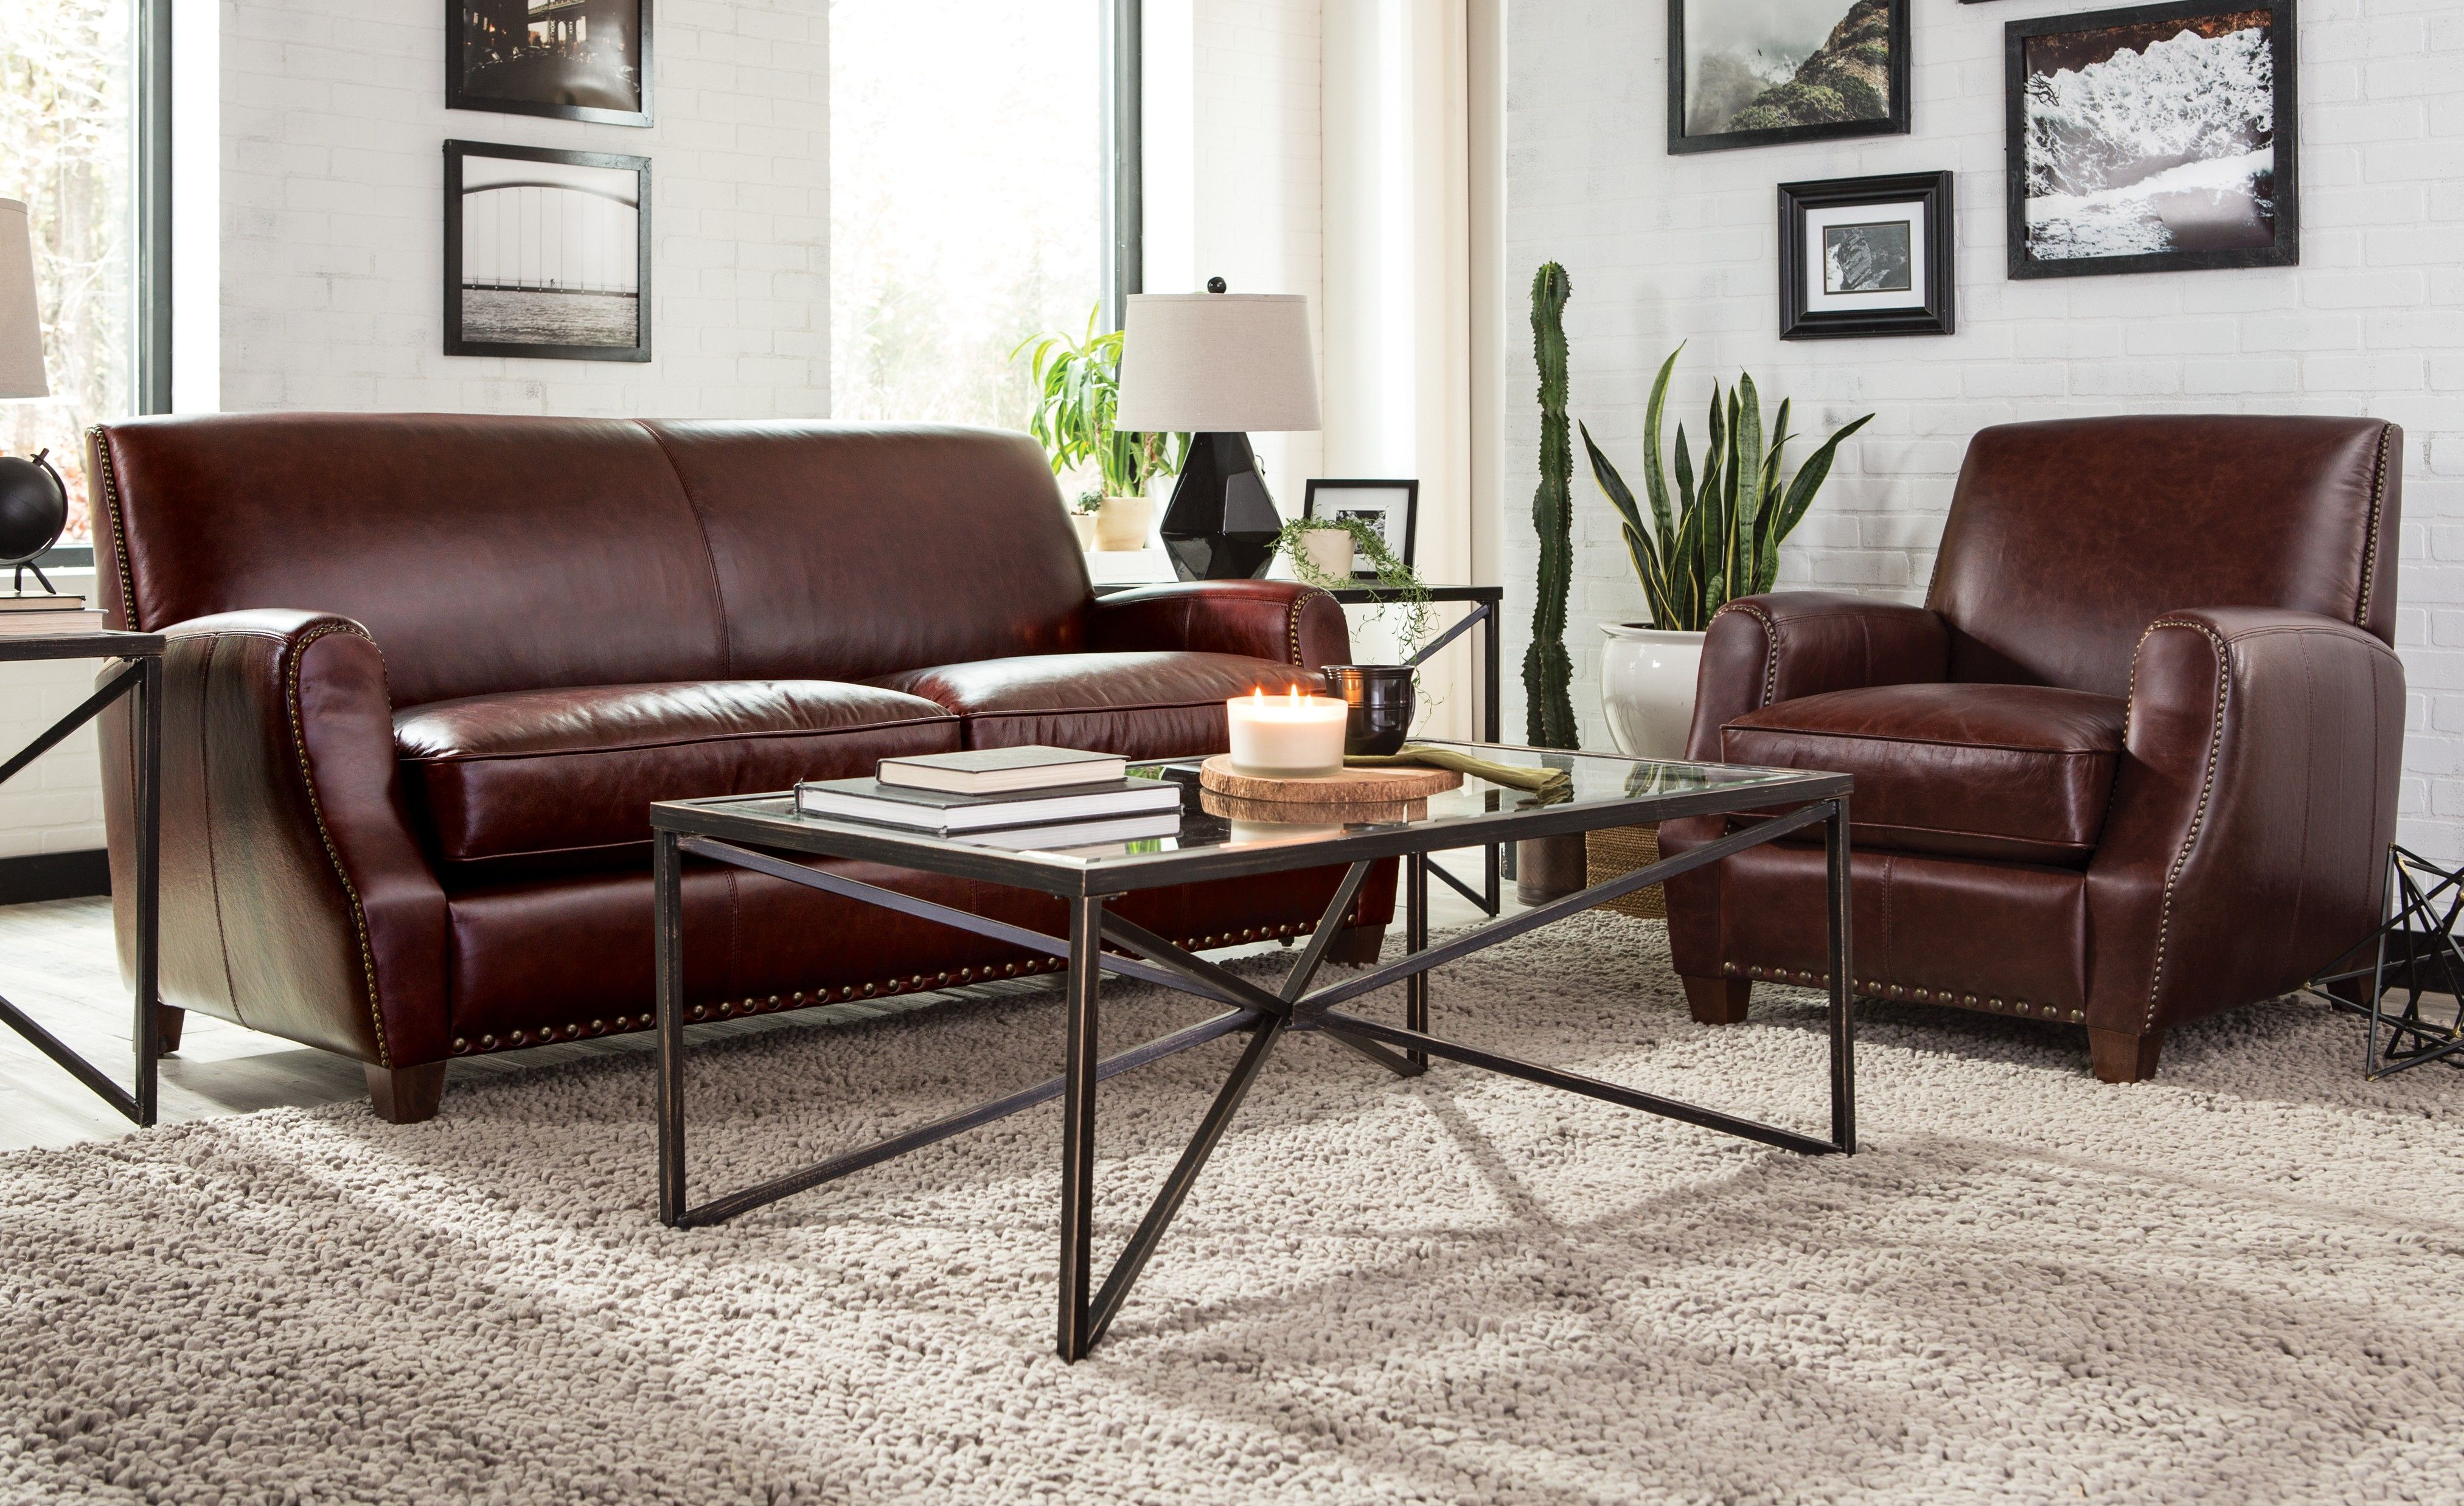 Modern Styling For Todayu0027s Living! Quality, Comfort, Affordability...Craftmaster  Furniture